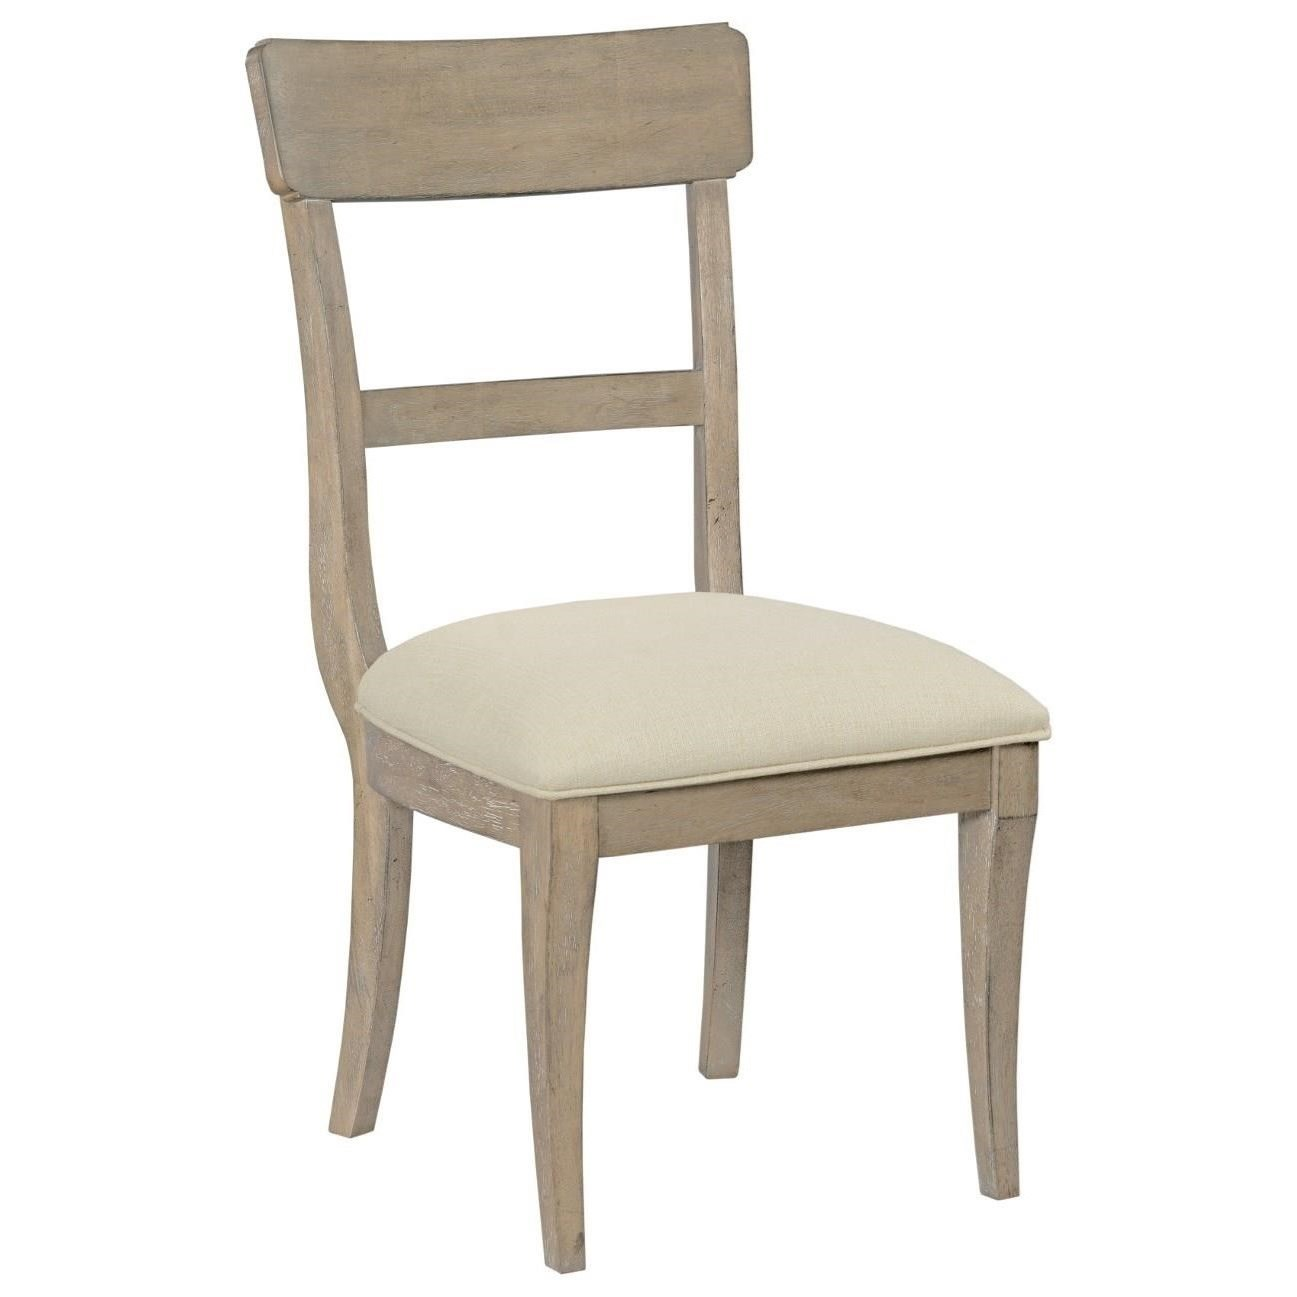 The Nook Side Chair w/ Upholstered Seat by Kincaid Furniture at Johnny Janosik